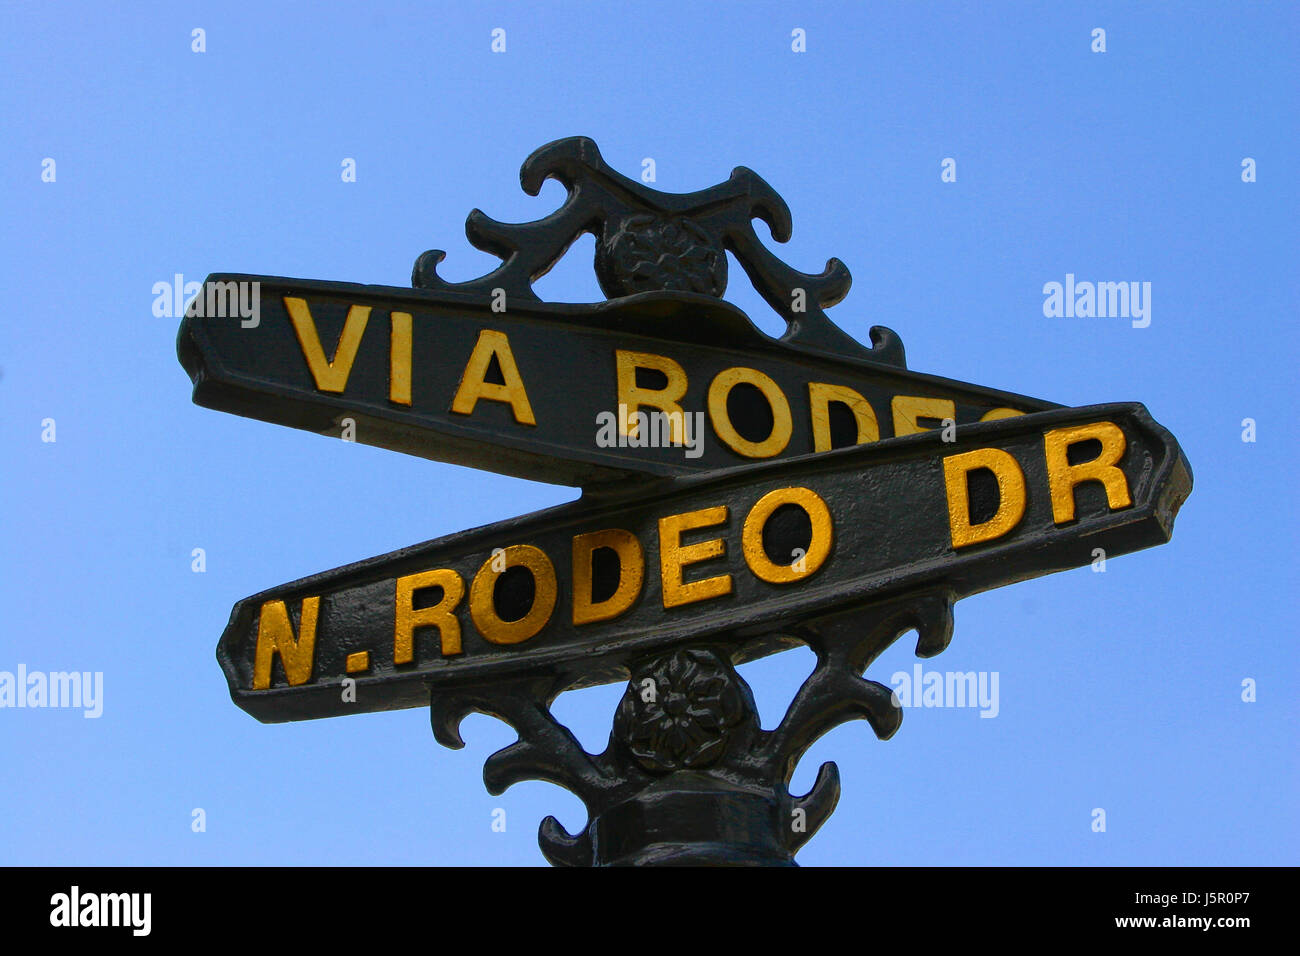 rodeo drive rodeo drive beverly hills los angeles kalifornien wilshire Stock Photo